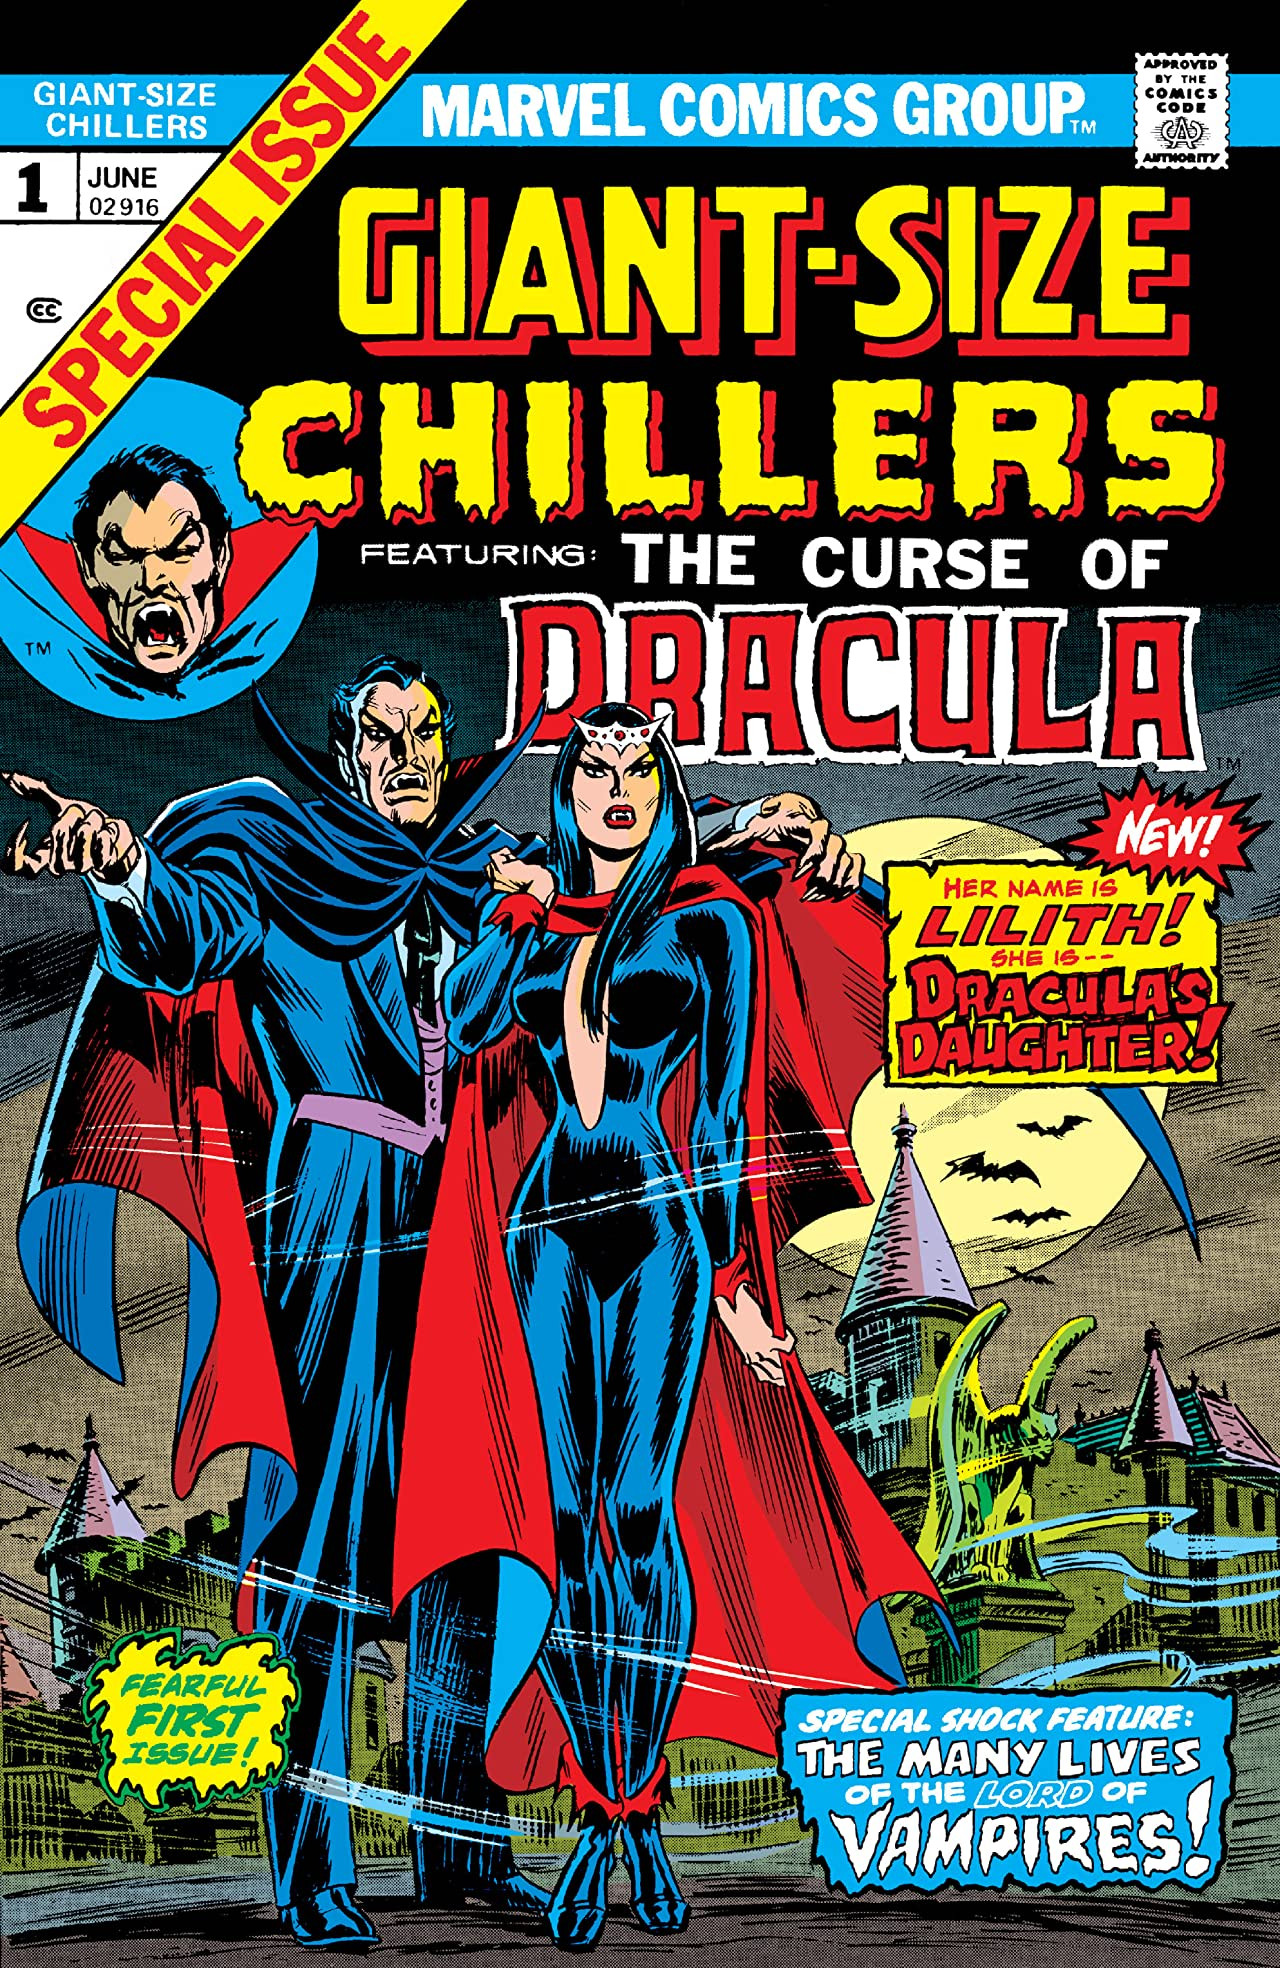 Giant-Size Chillers Featuring Curse of Dracula Vol 1